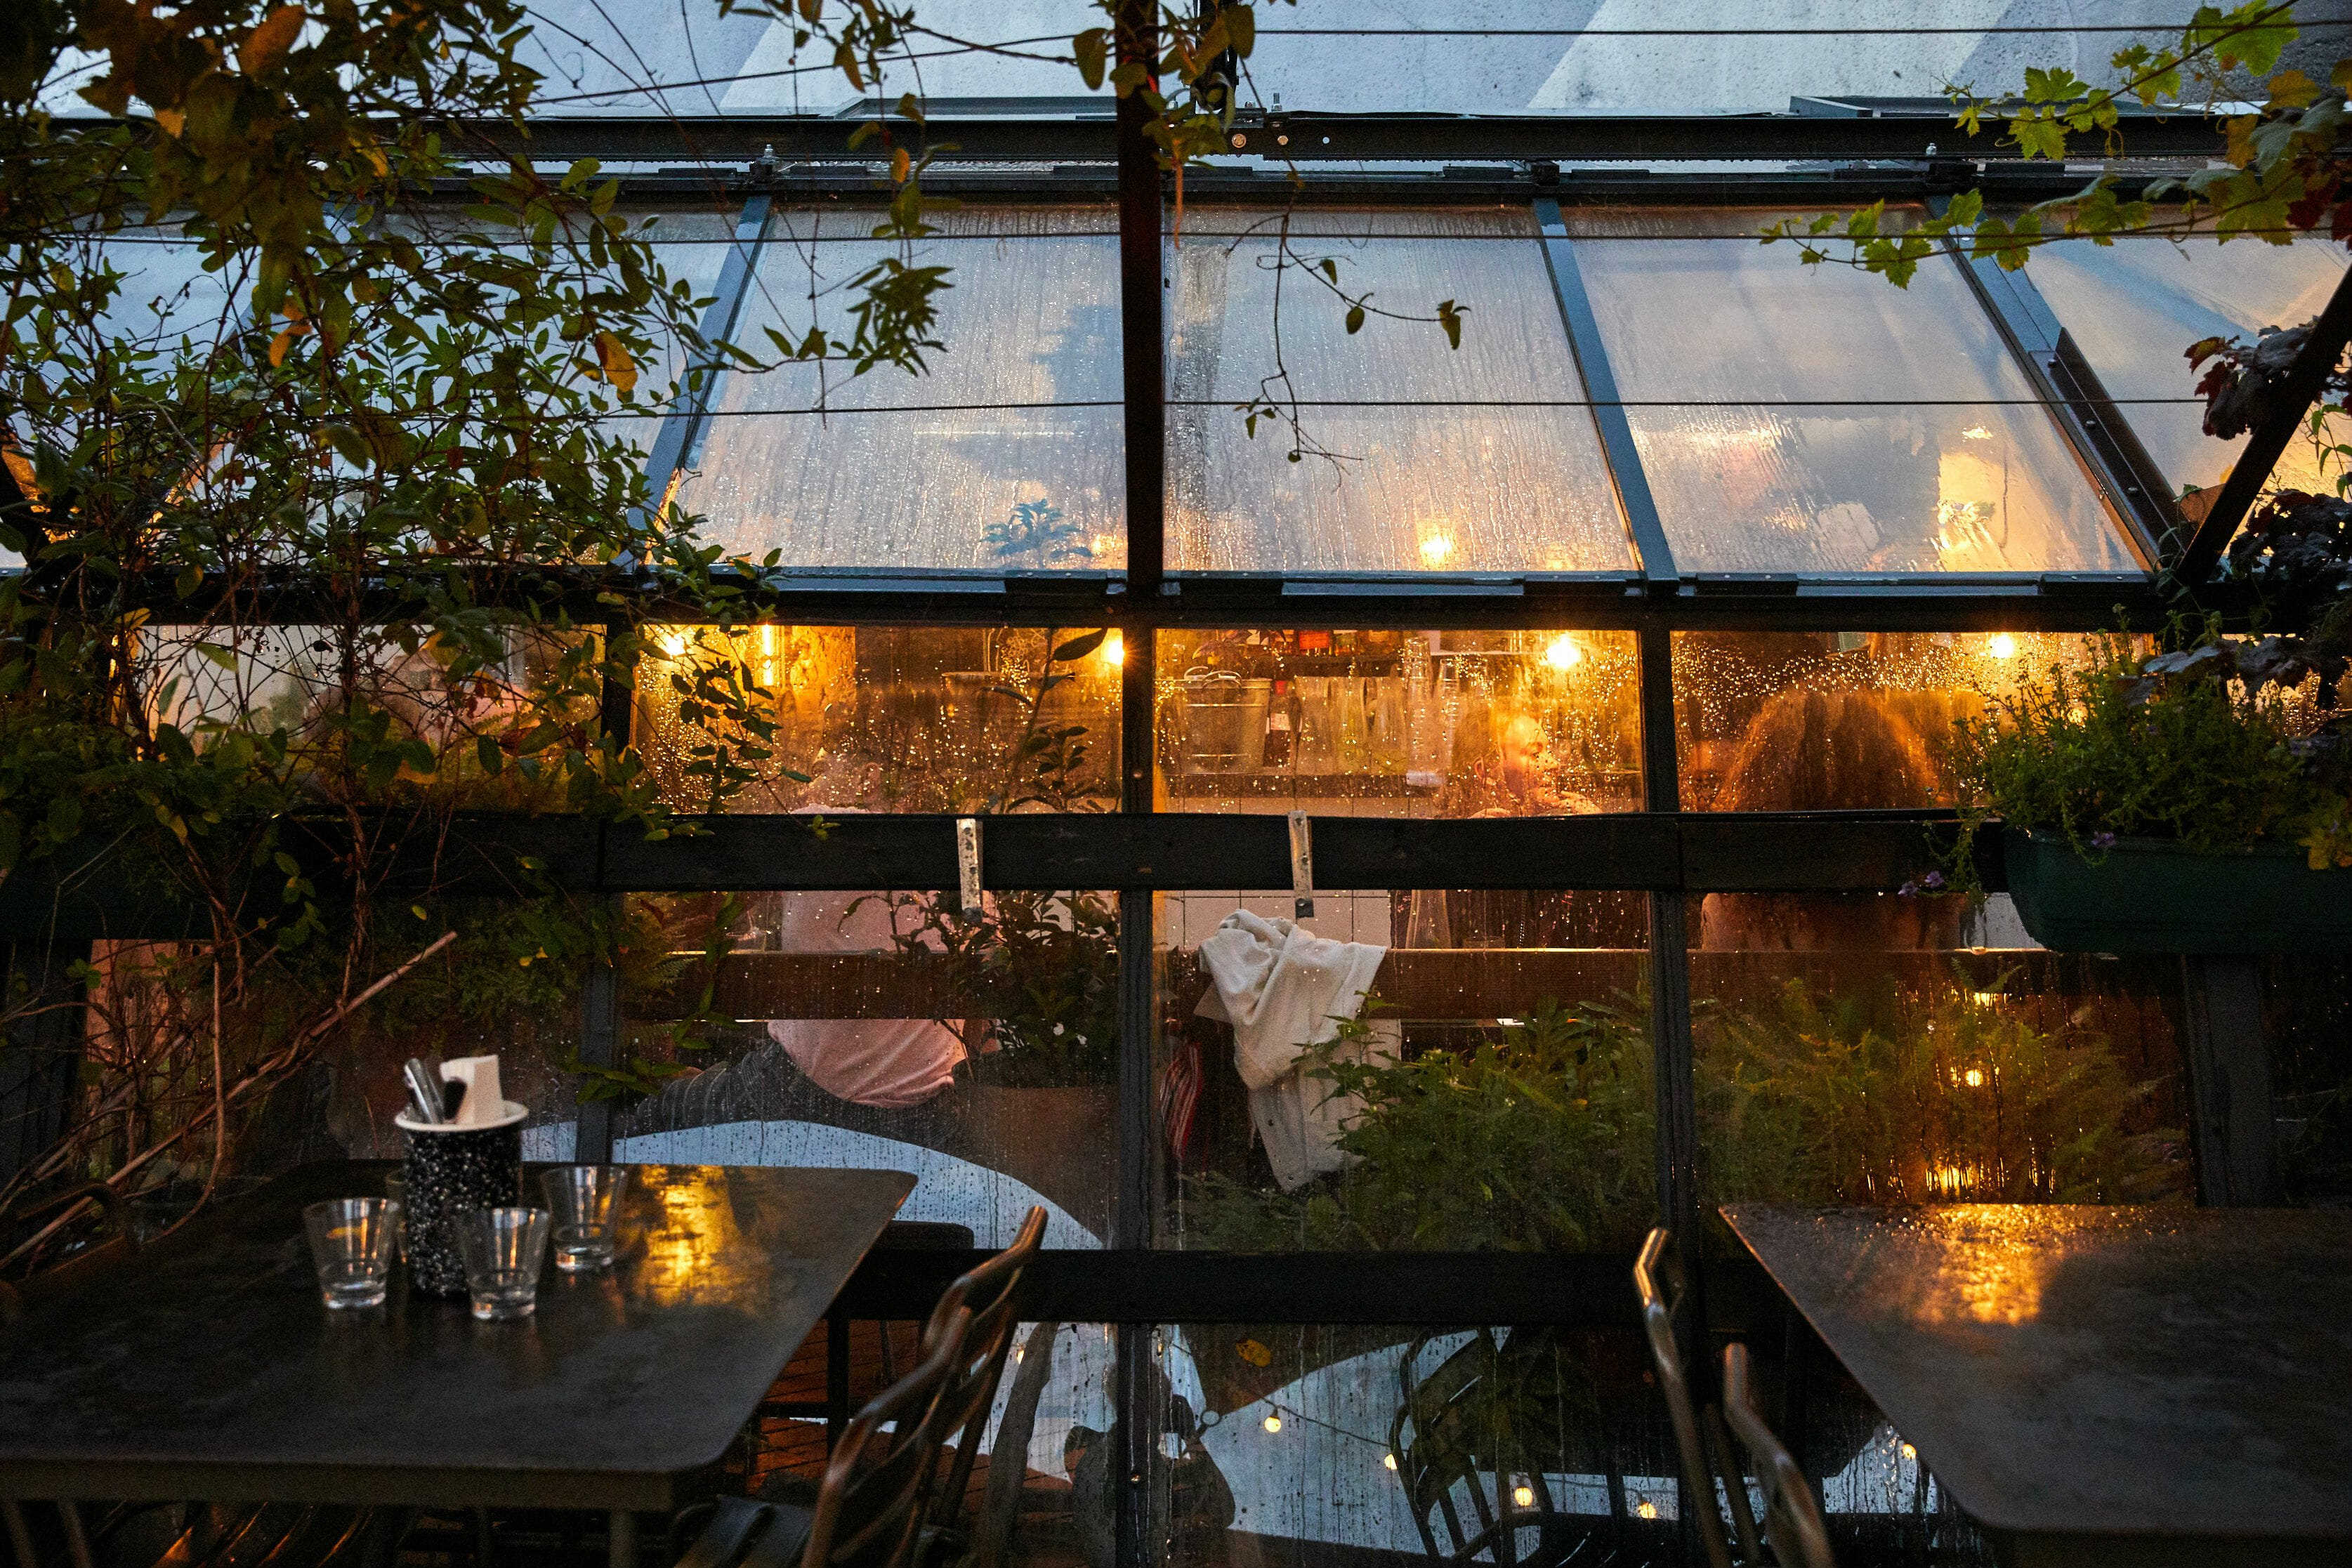 places to go in shoreditch